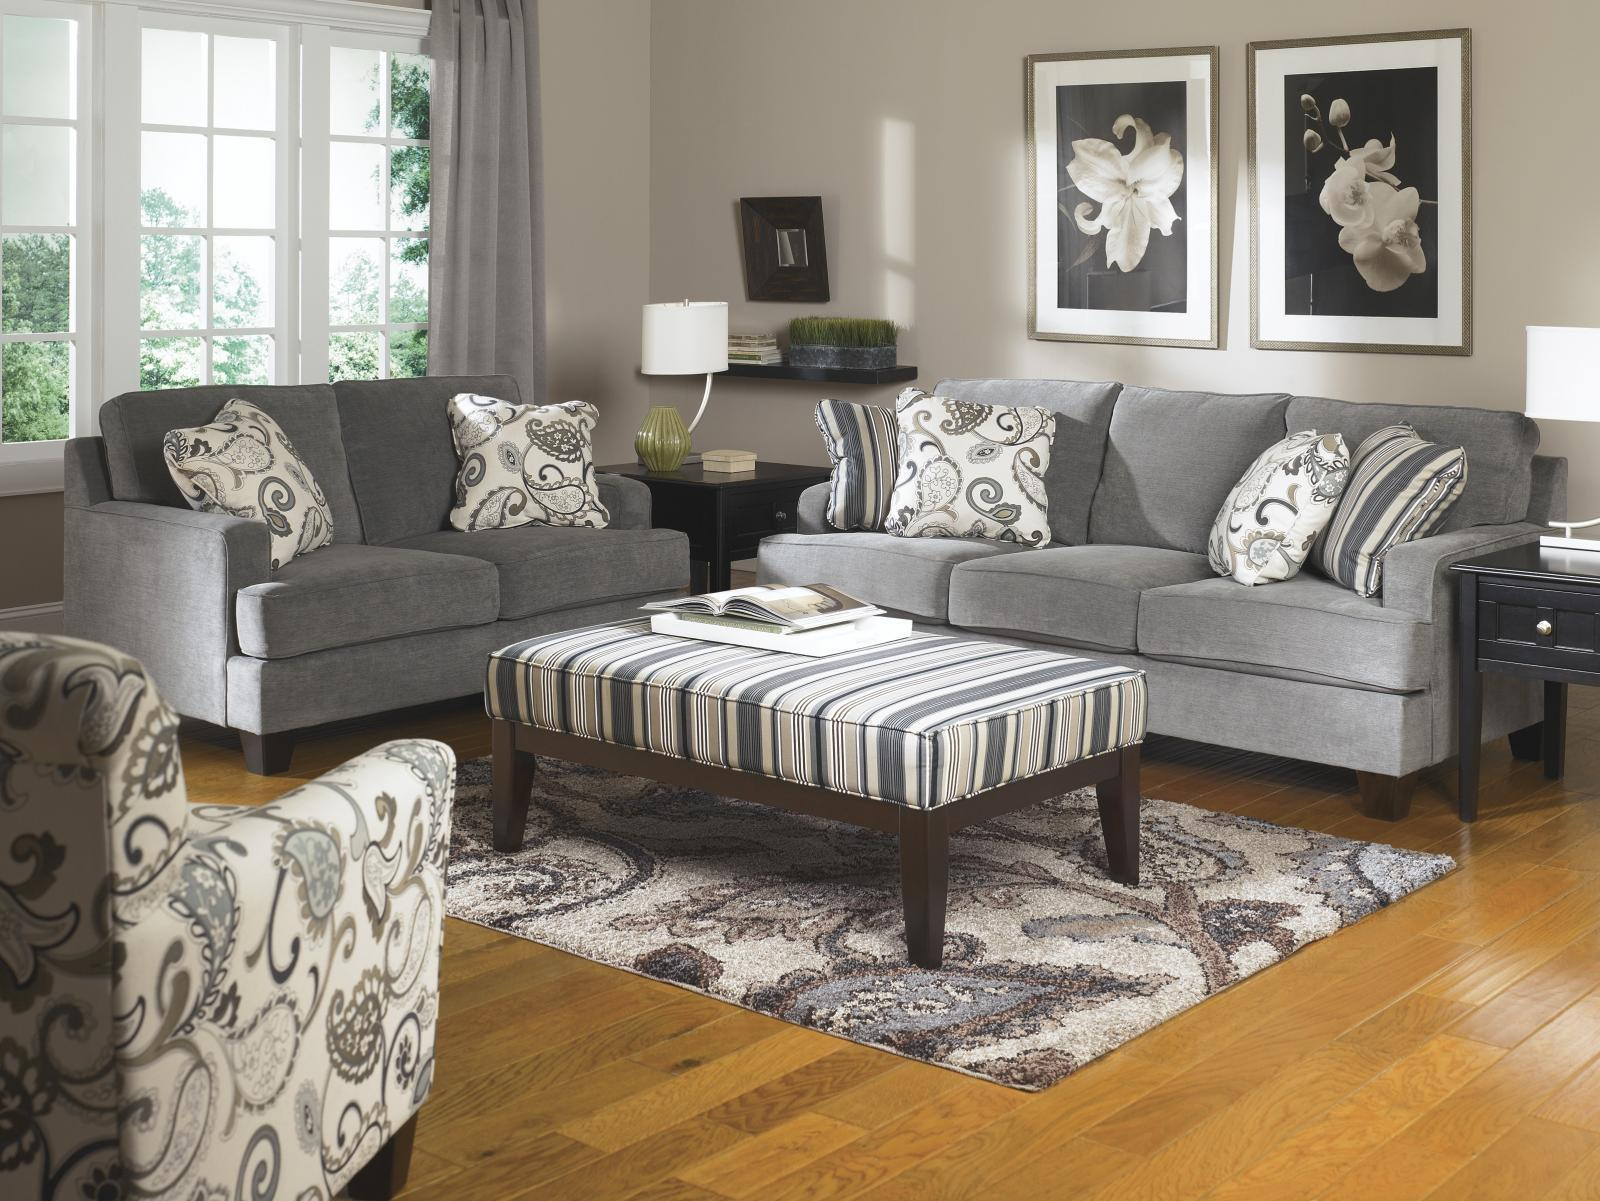 Ashley Yvette Living Room Set 4pcs in Steel Upholstery Fabric Contemporary Style